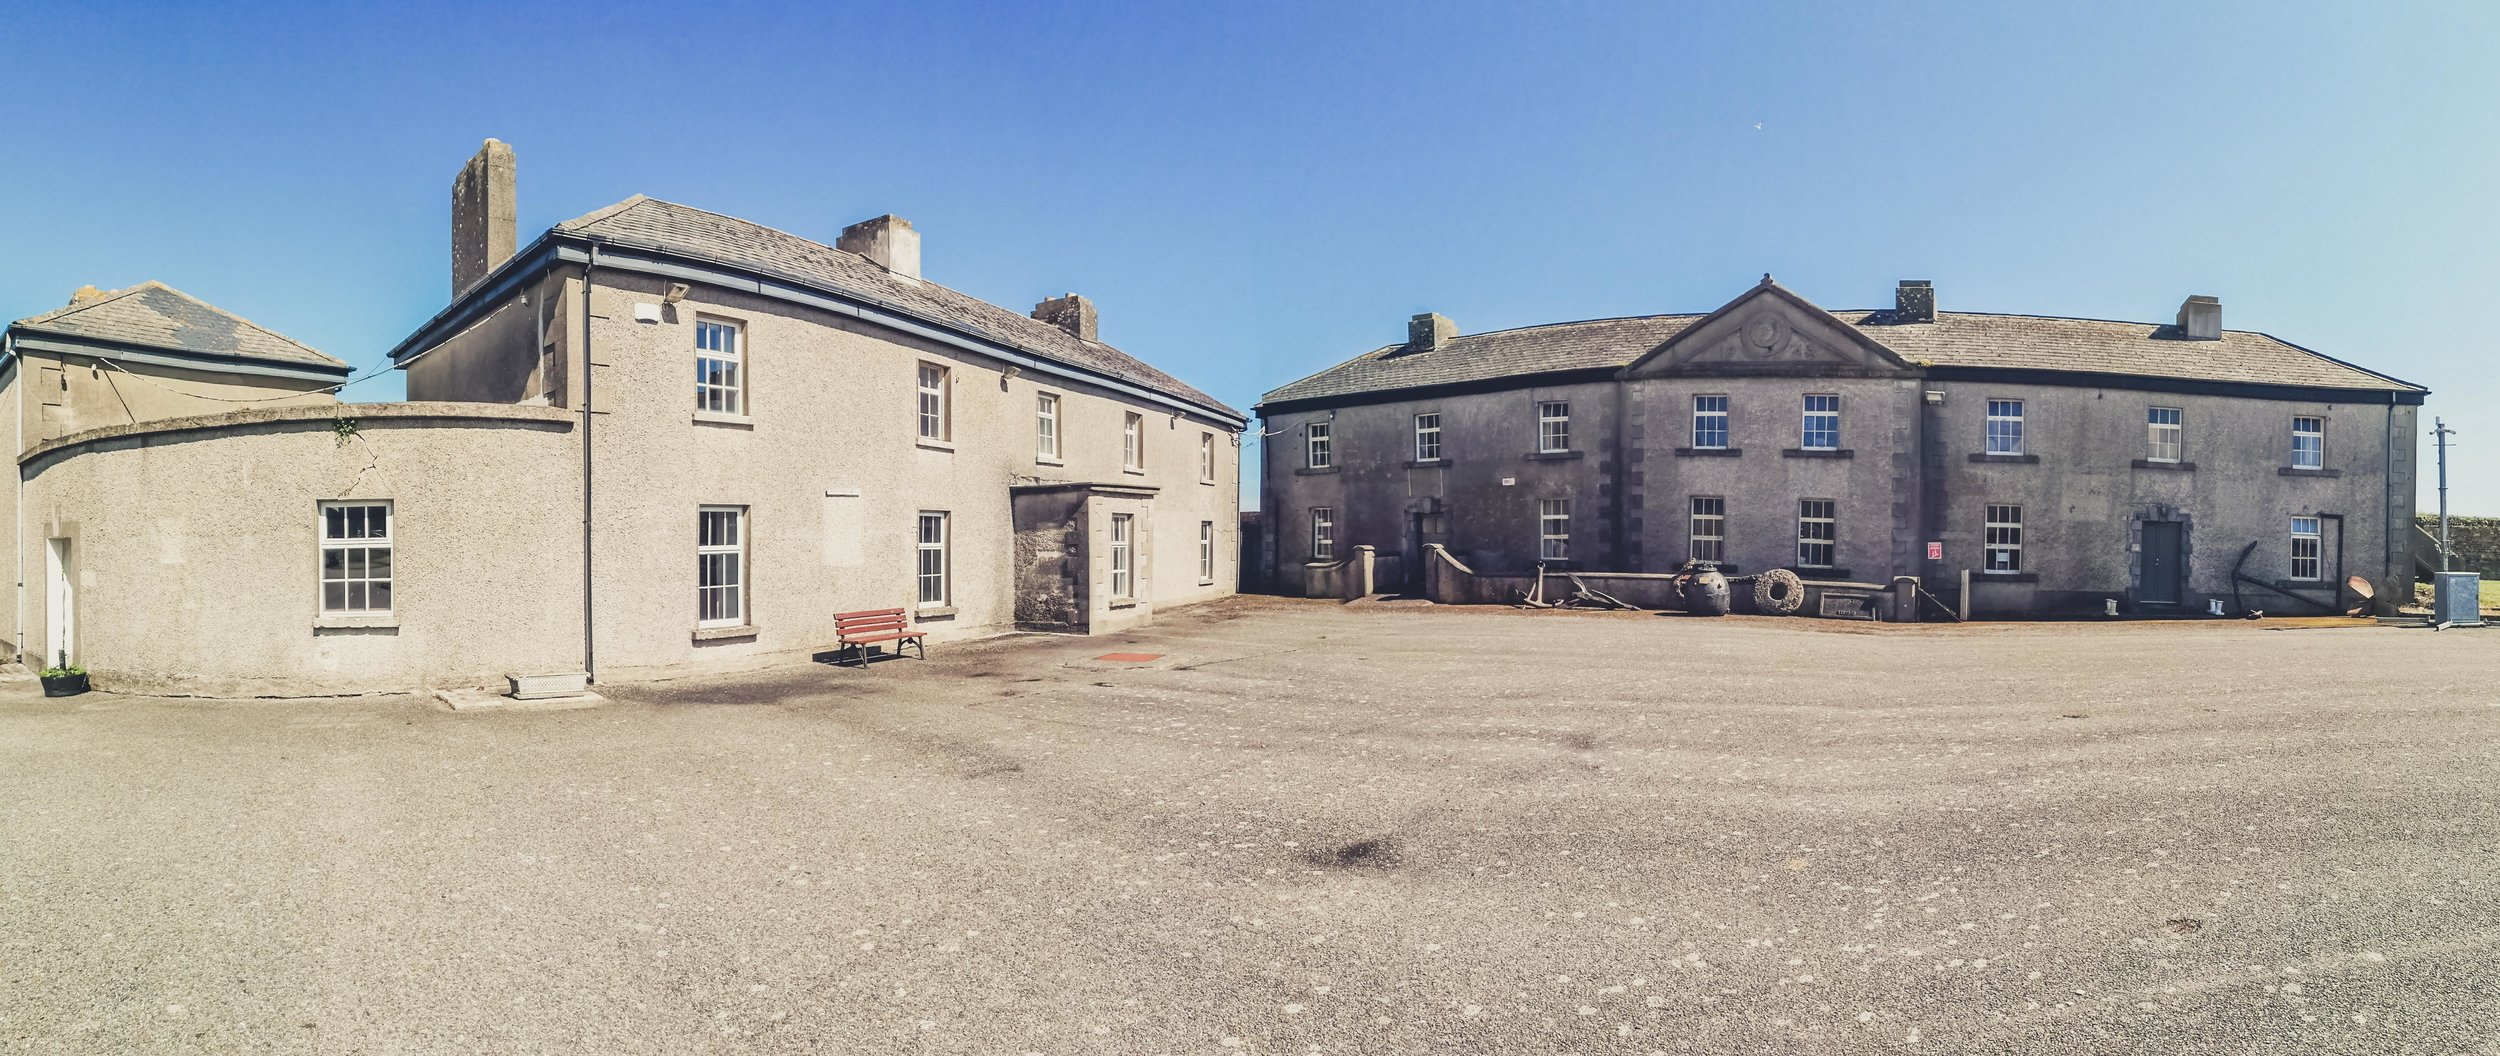 Duncannon Fort. Ireland courtyard and buildings.jpg